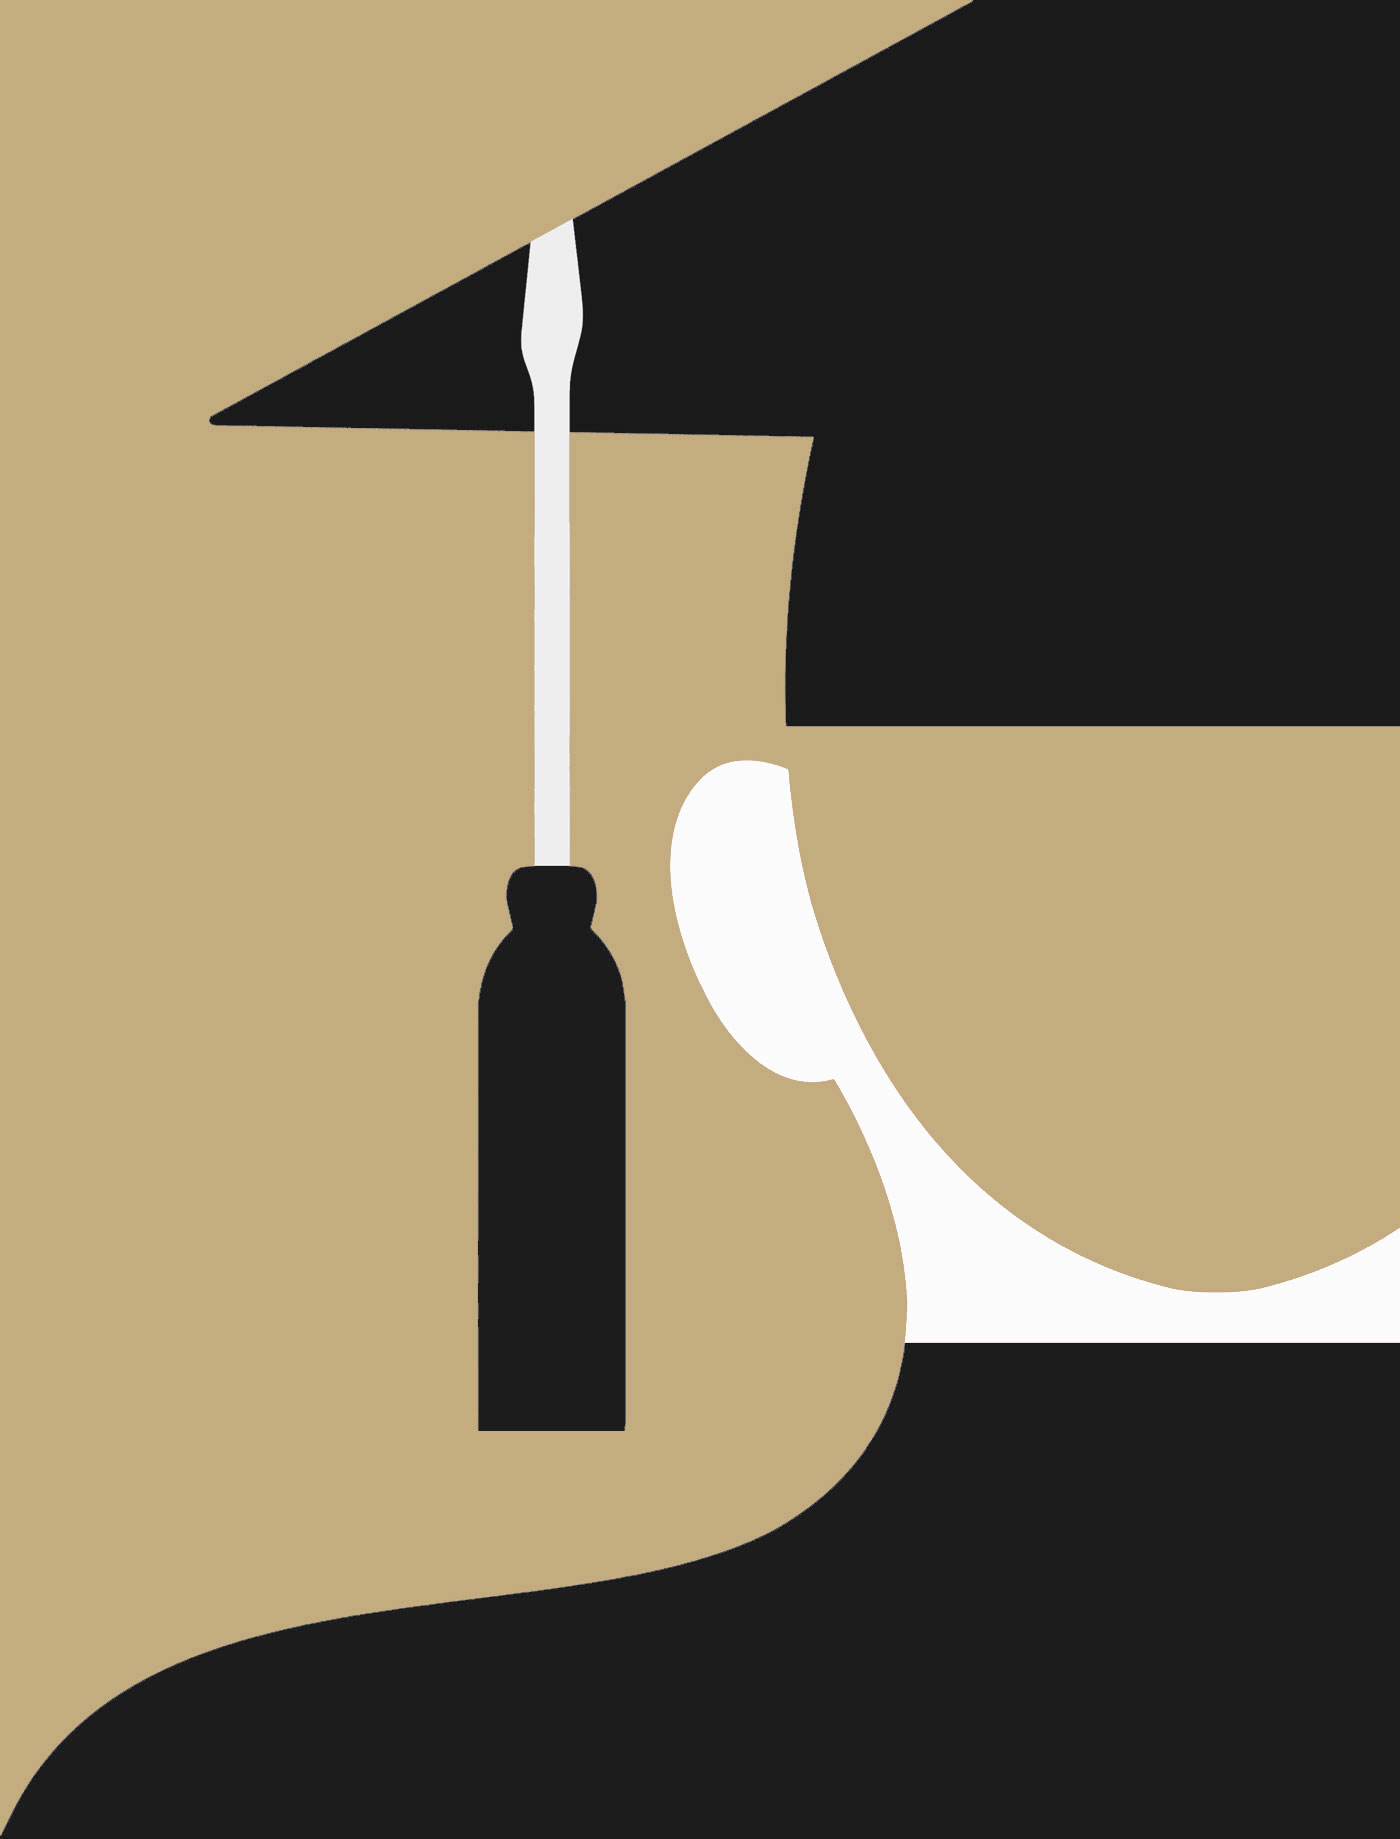 The New York Times - Illustration for an Op-Ed about how practical further education should be.